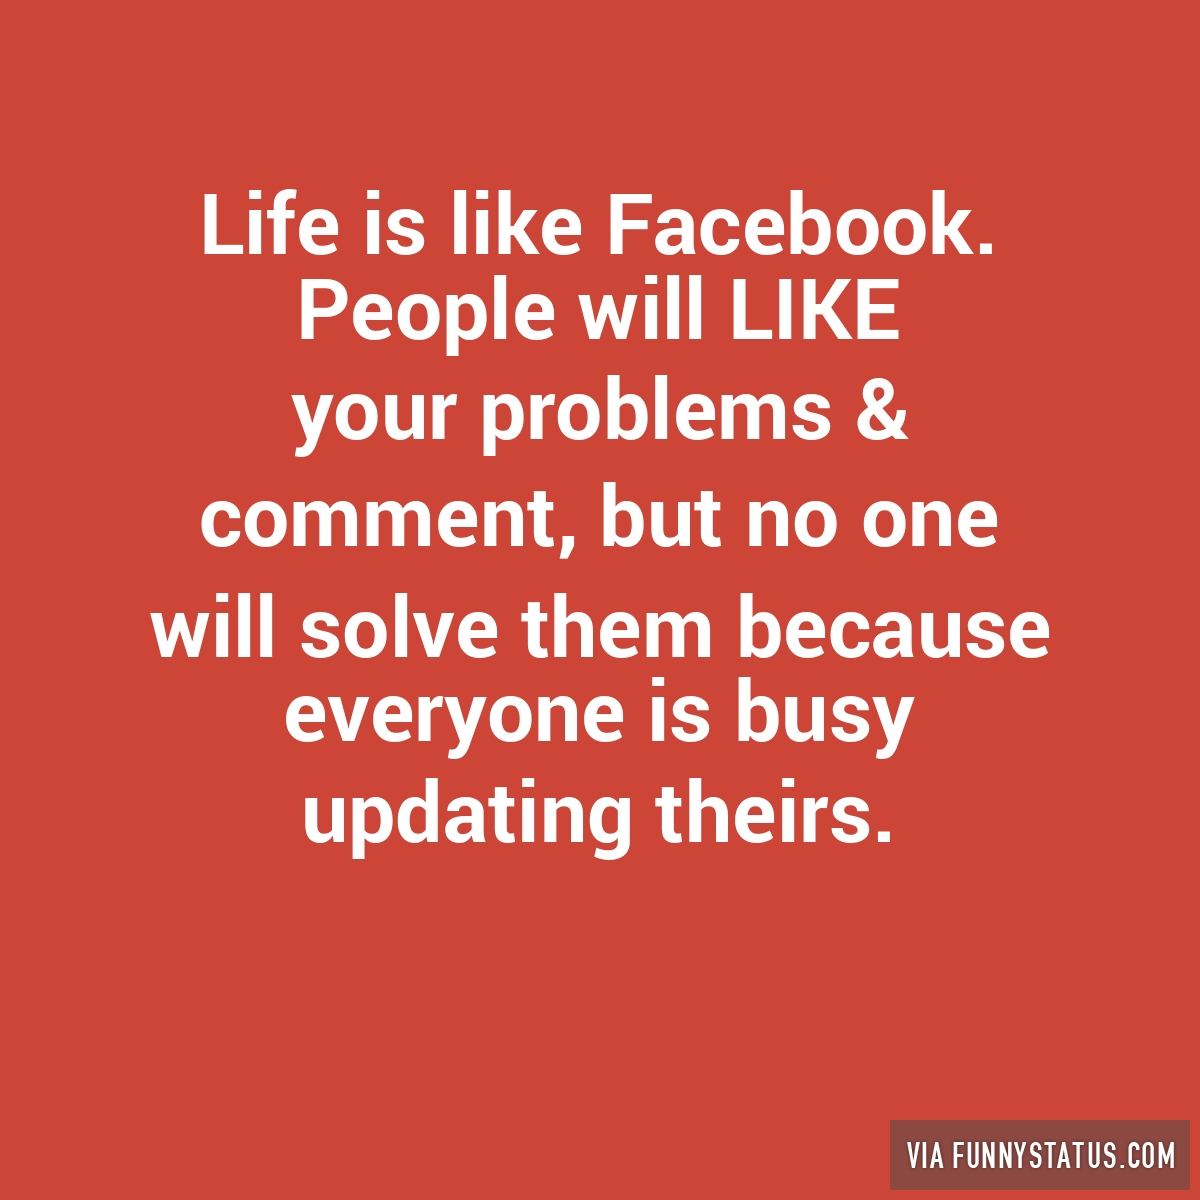 Cool facebook status symbols images symbol and sign ideas life is like facebook people will like your problems funny status buycottarizona biocorpaavc